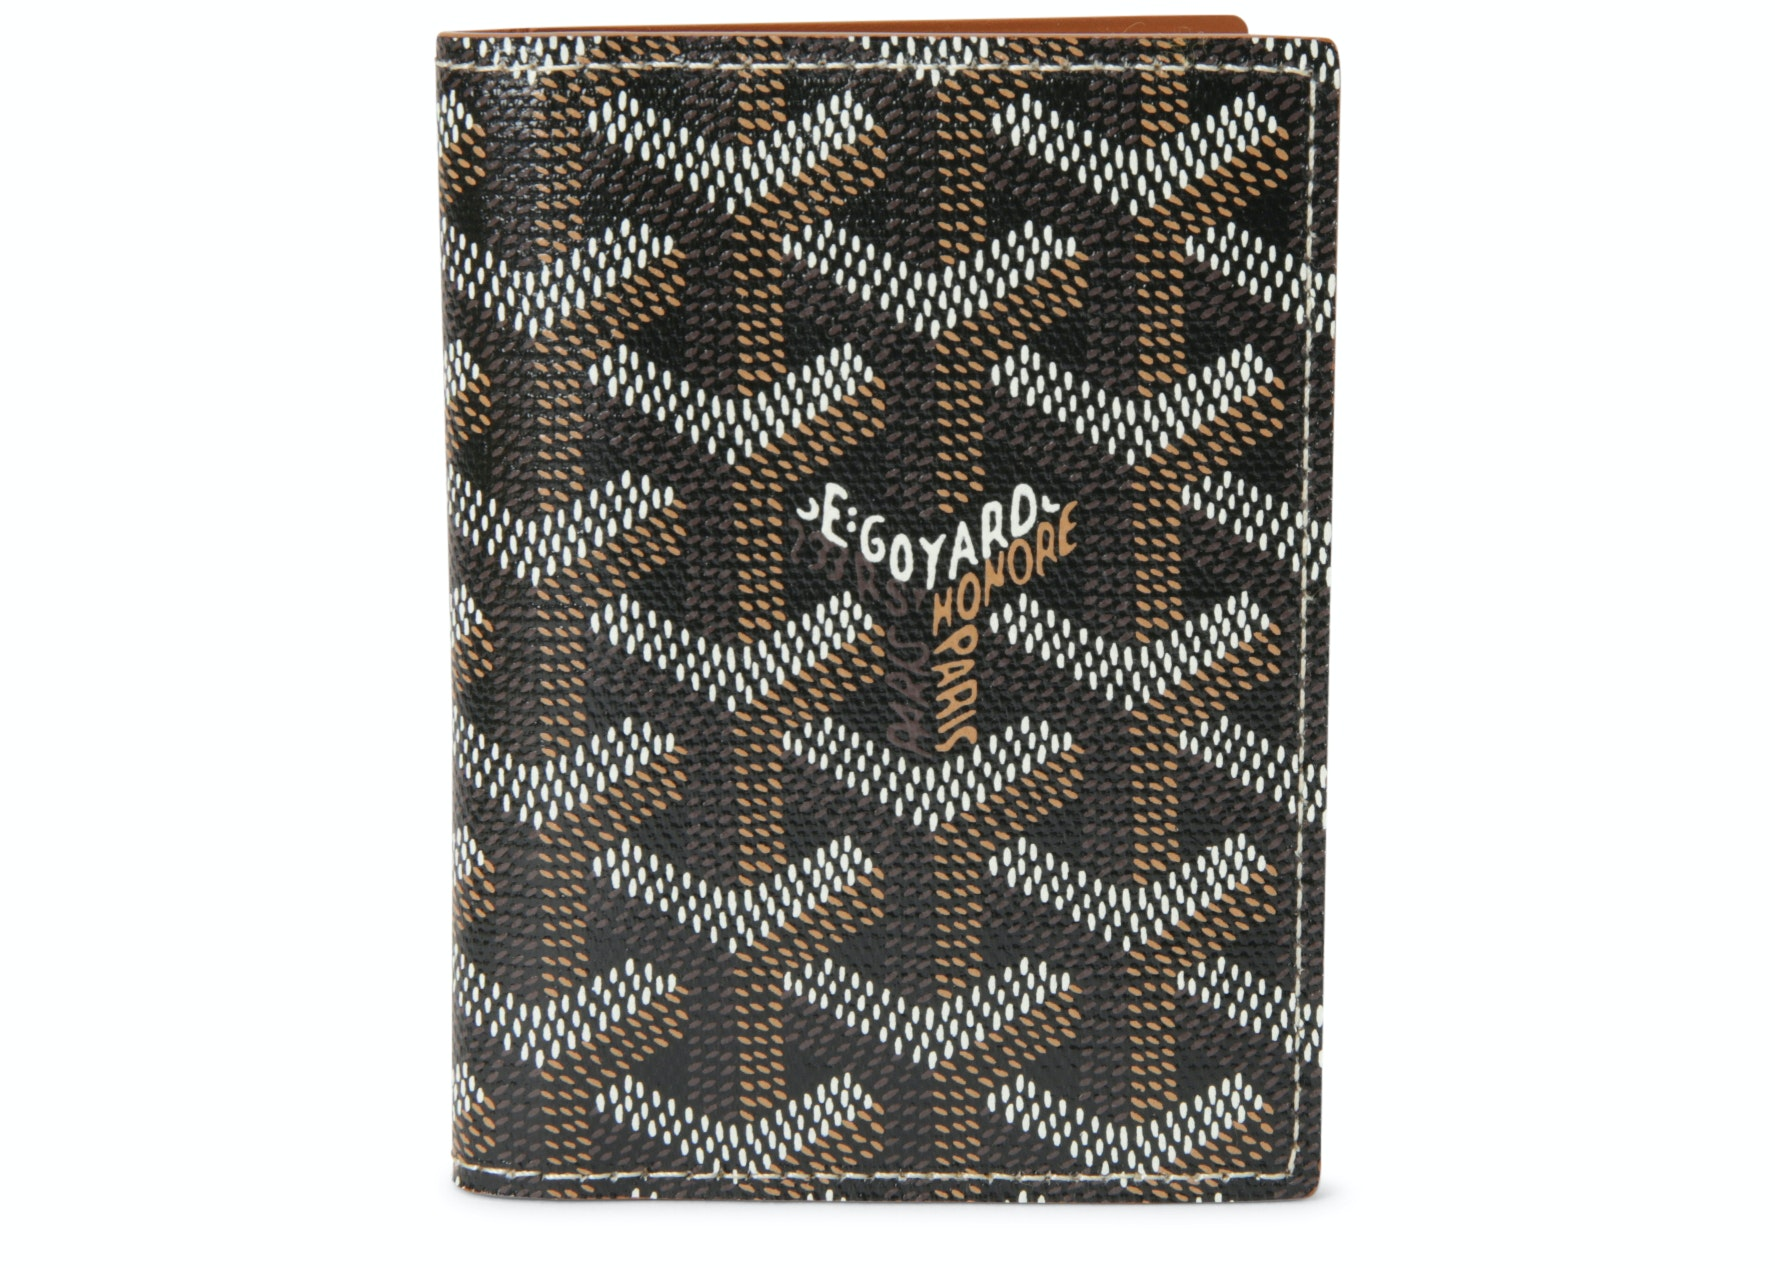 Goyard Saint Marc's Card Case Chevron Black/Brown